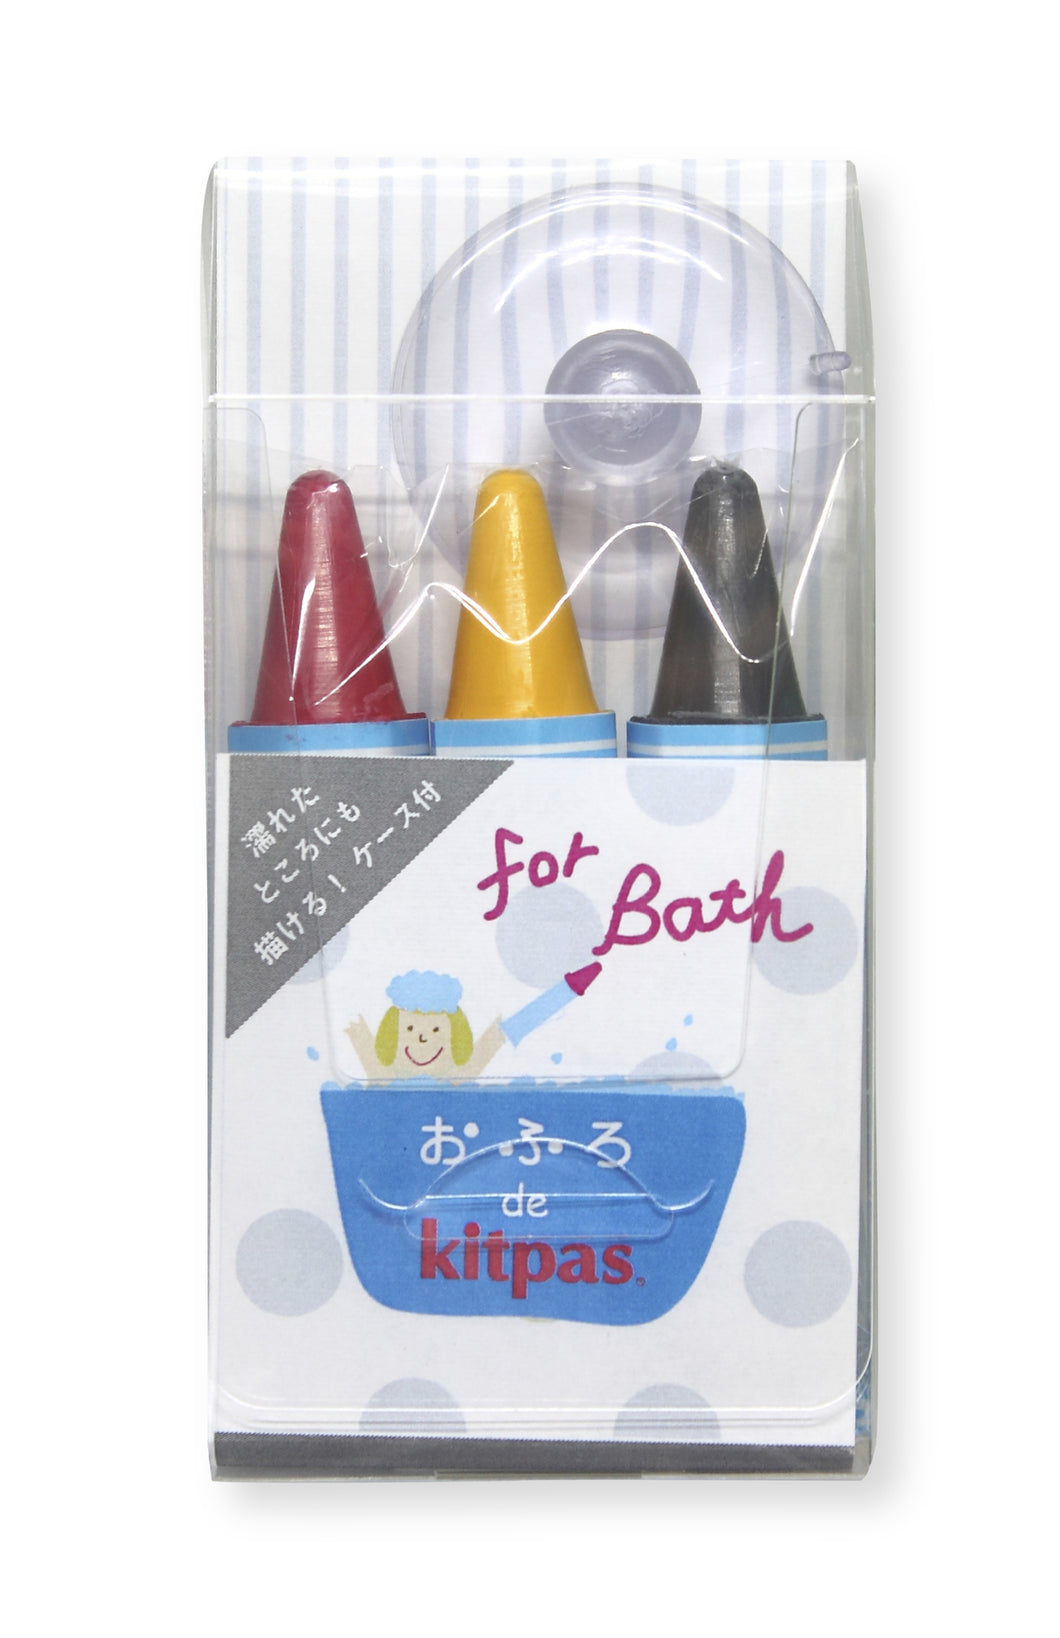 kitpas set of 3 bath crayons on red, yellow and grey